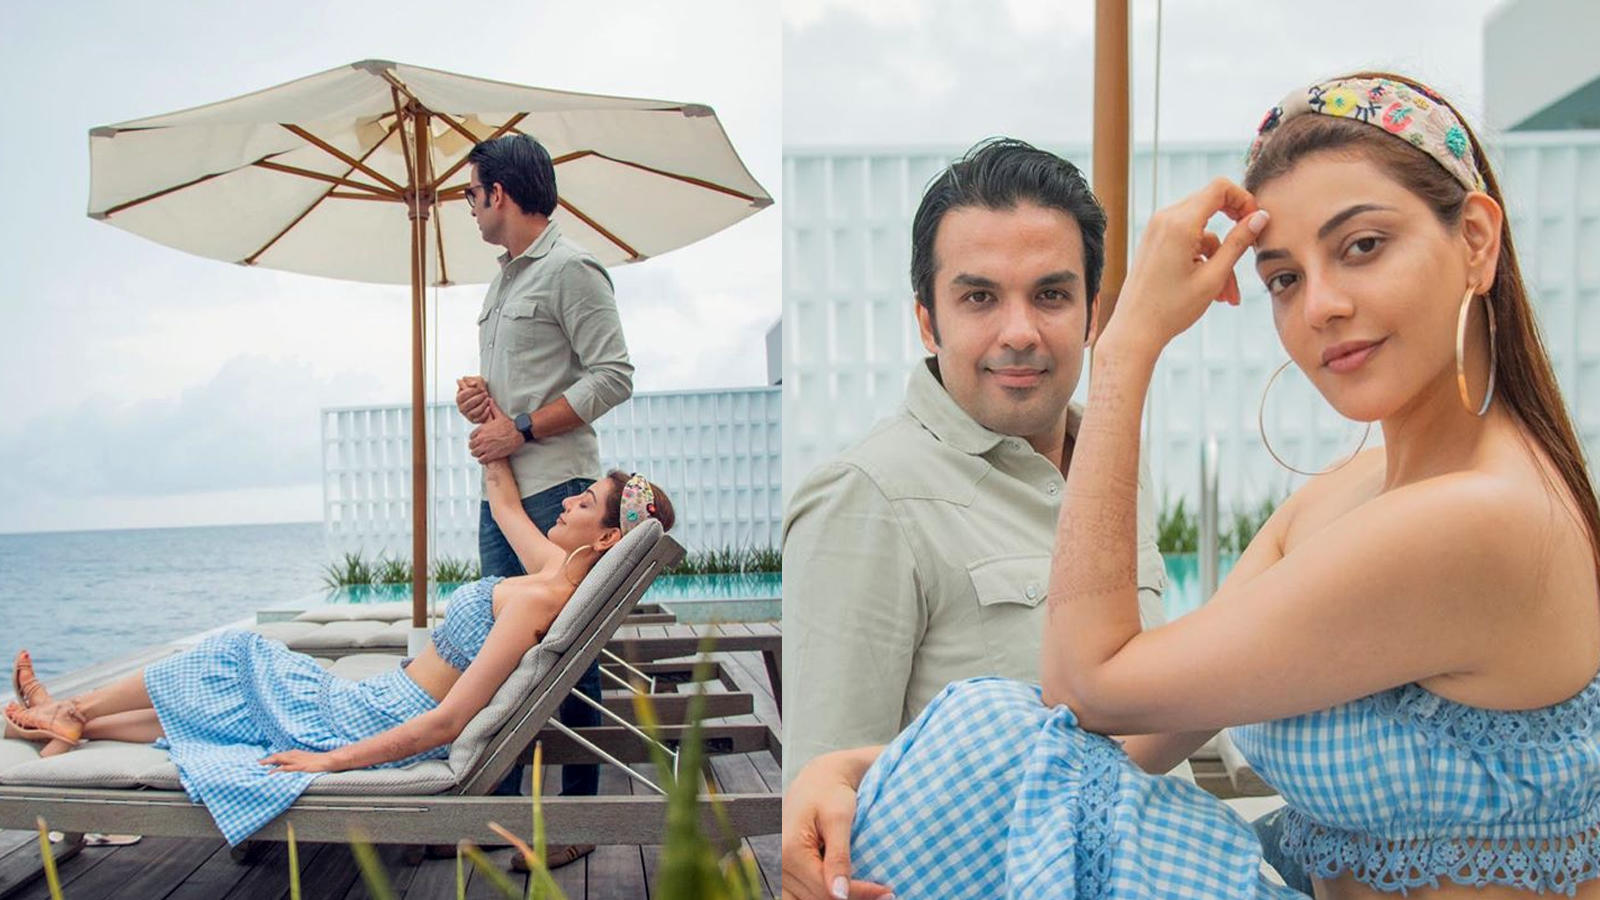 Kajal Agarwal and Gautam Kichlu's honeymoon pictures from Maldives are just like a dream! | Hindi Movie News - Bollywood - Times of India